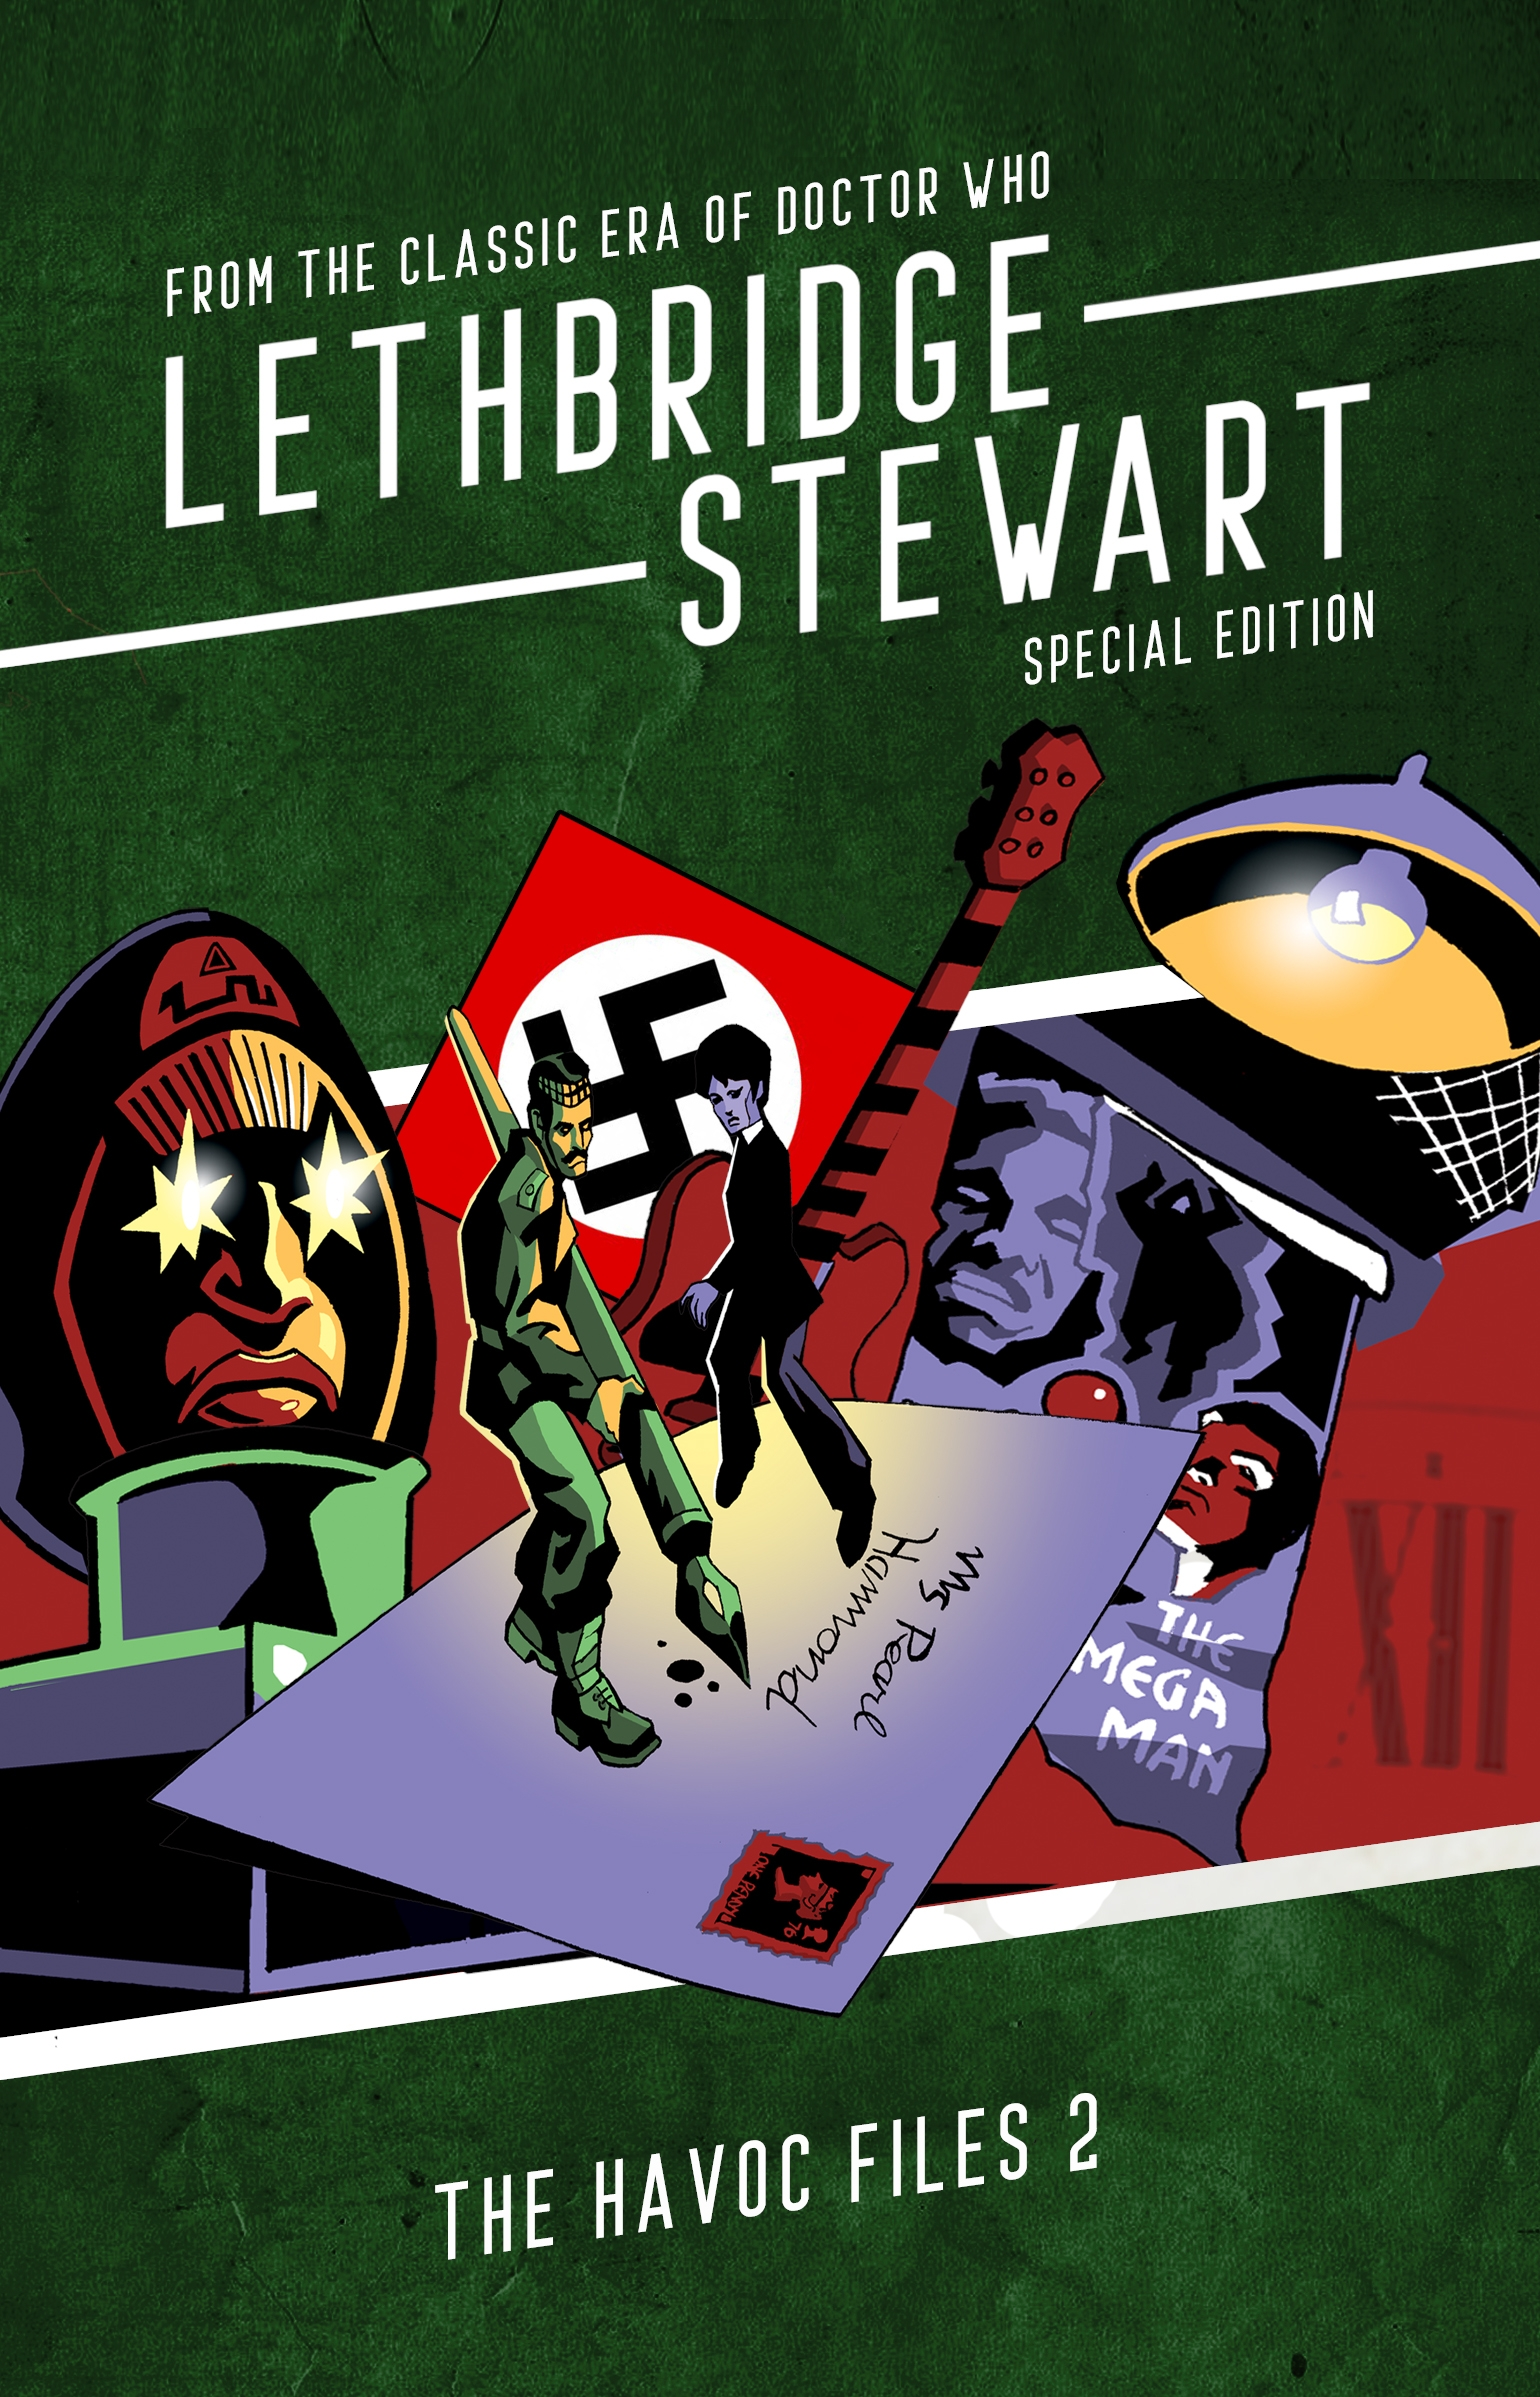 Lethbridge-Stewart: The HAVOC Files 2 Special Edition (Credit: Candy Jar Books)